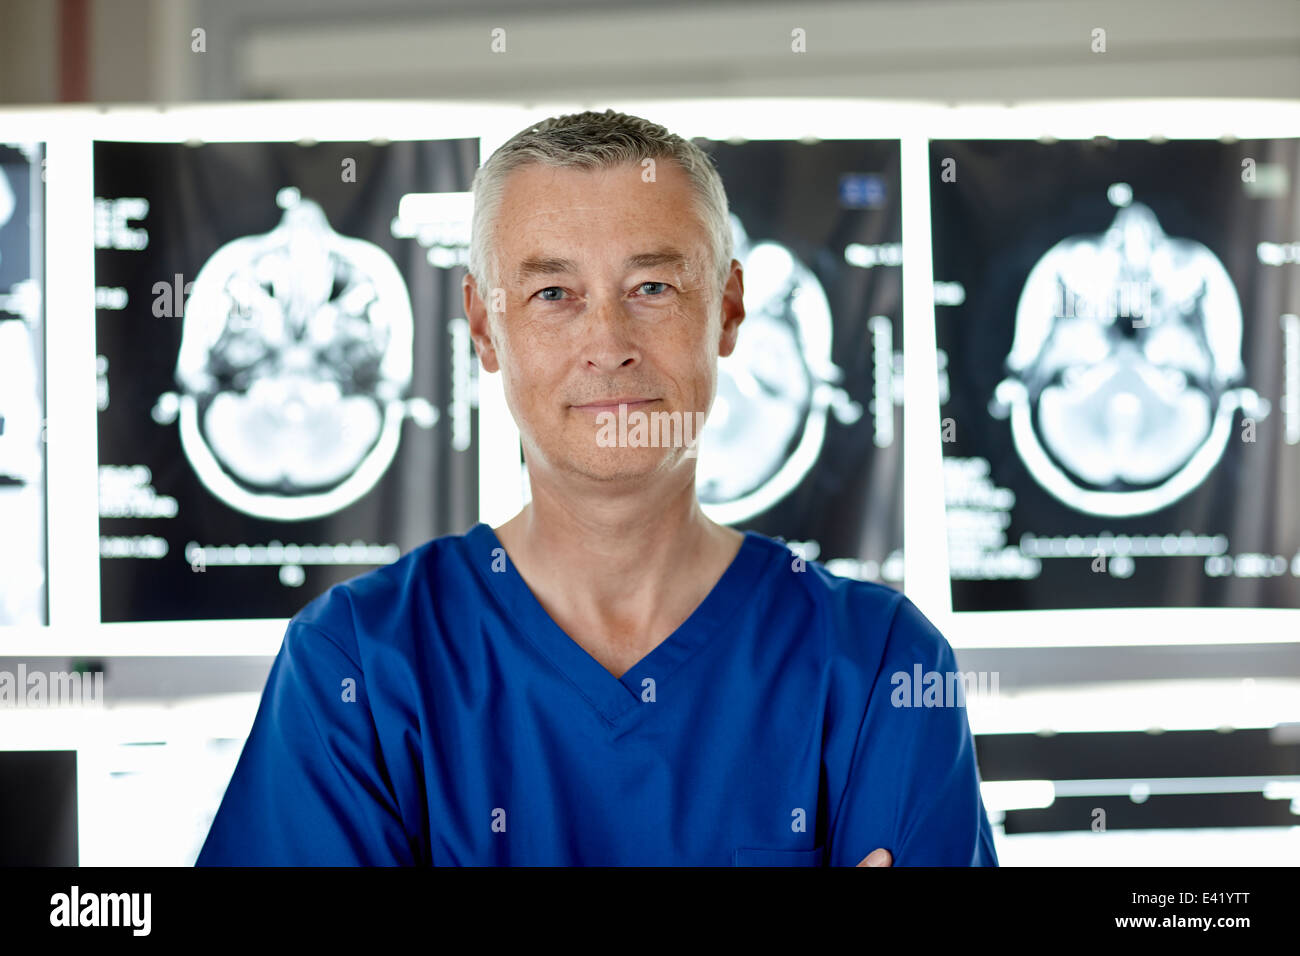 Radiologist standing in front of brain scans - Stock Image